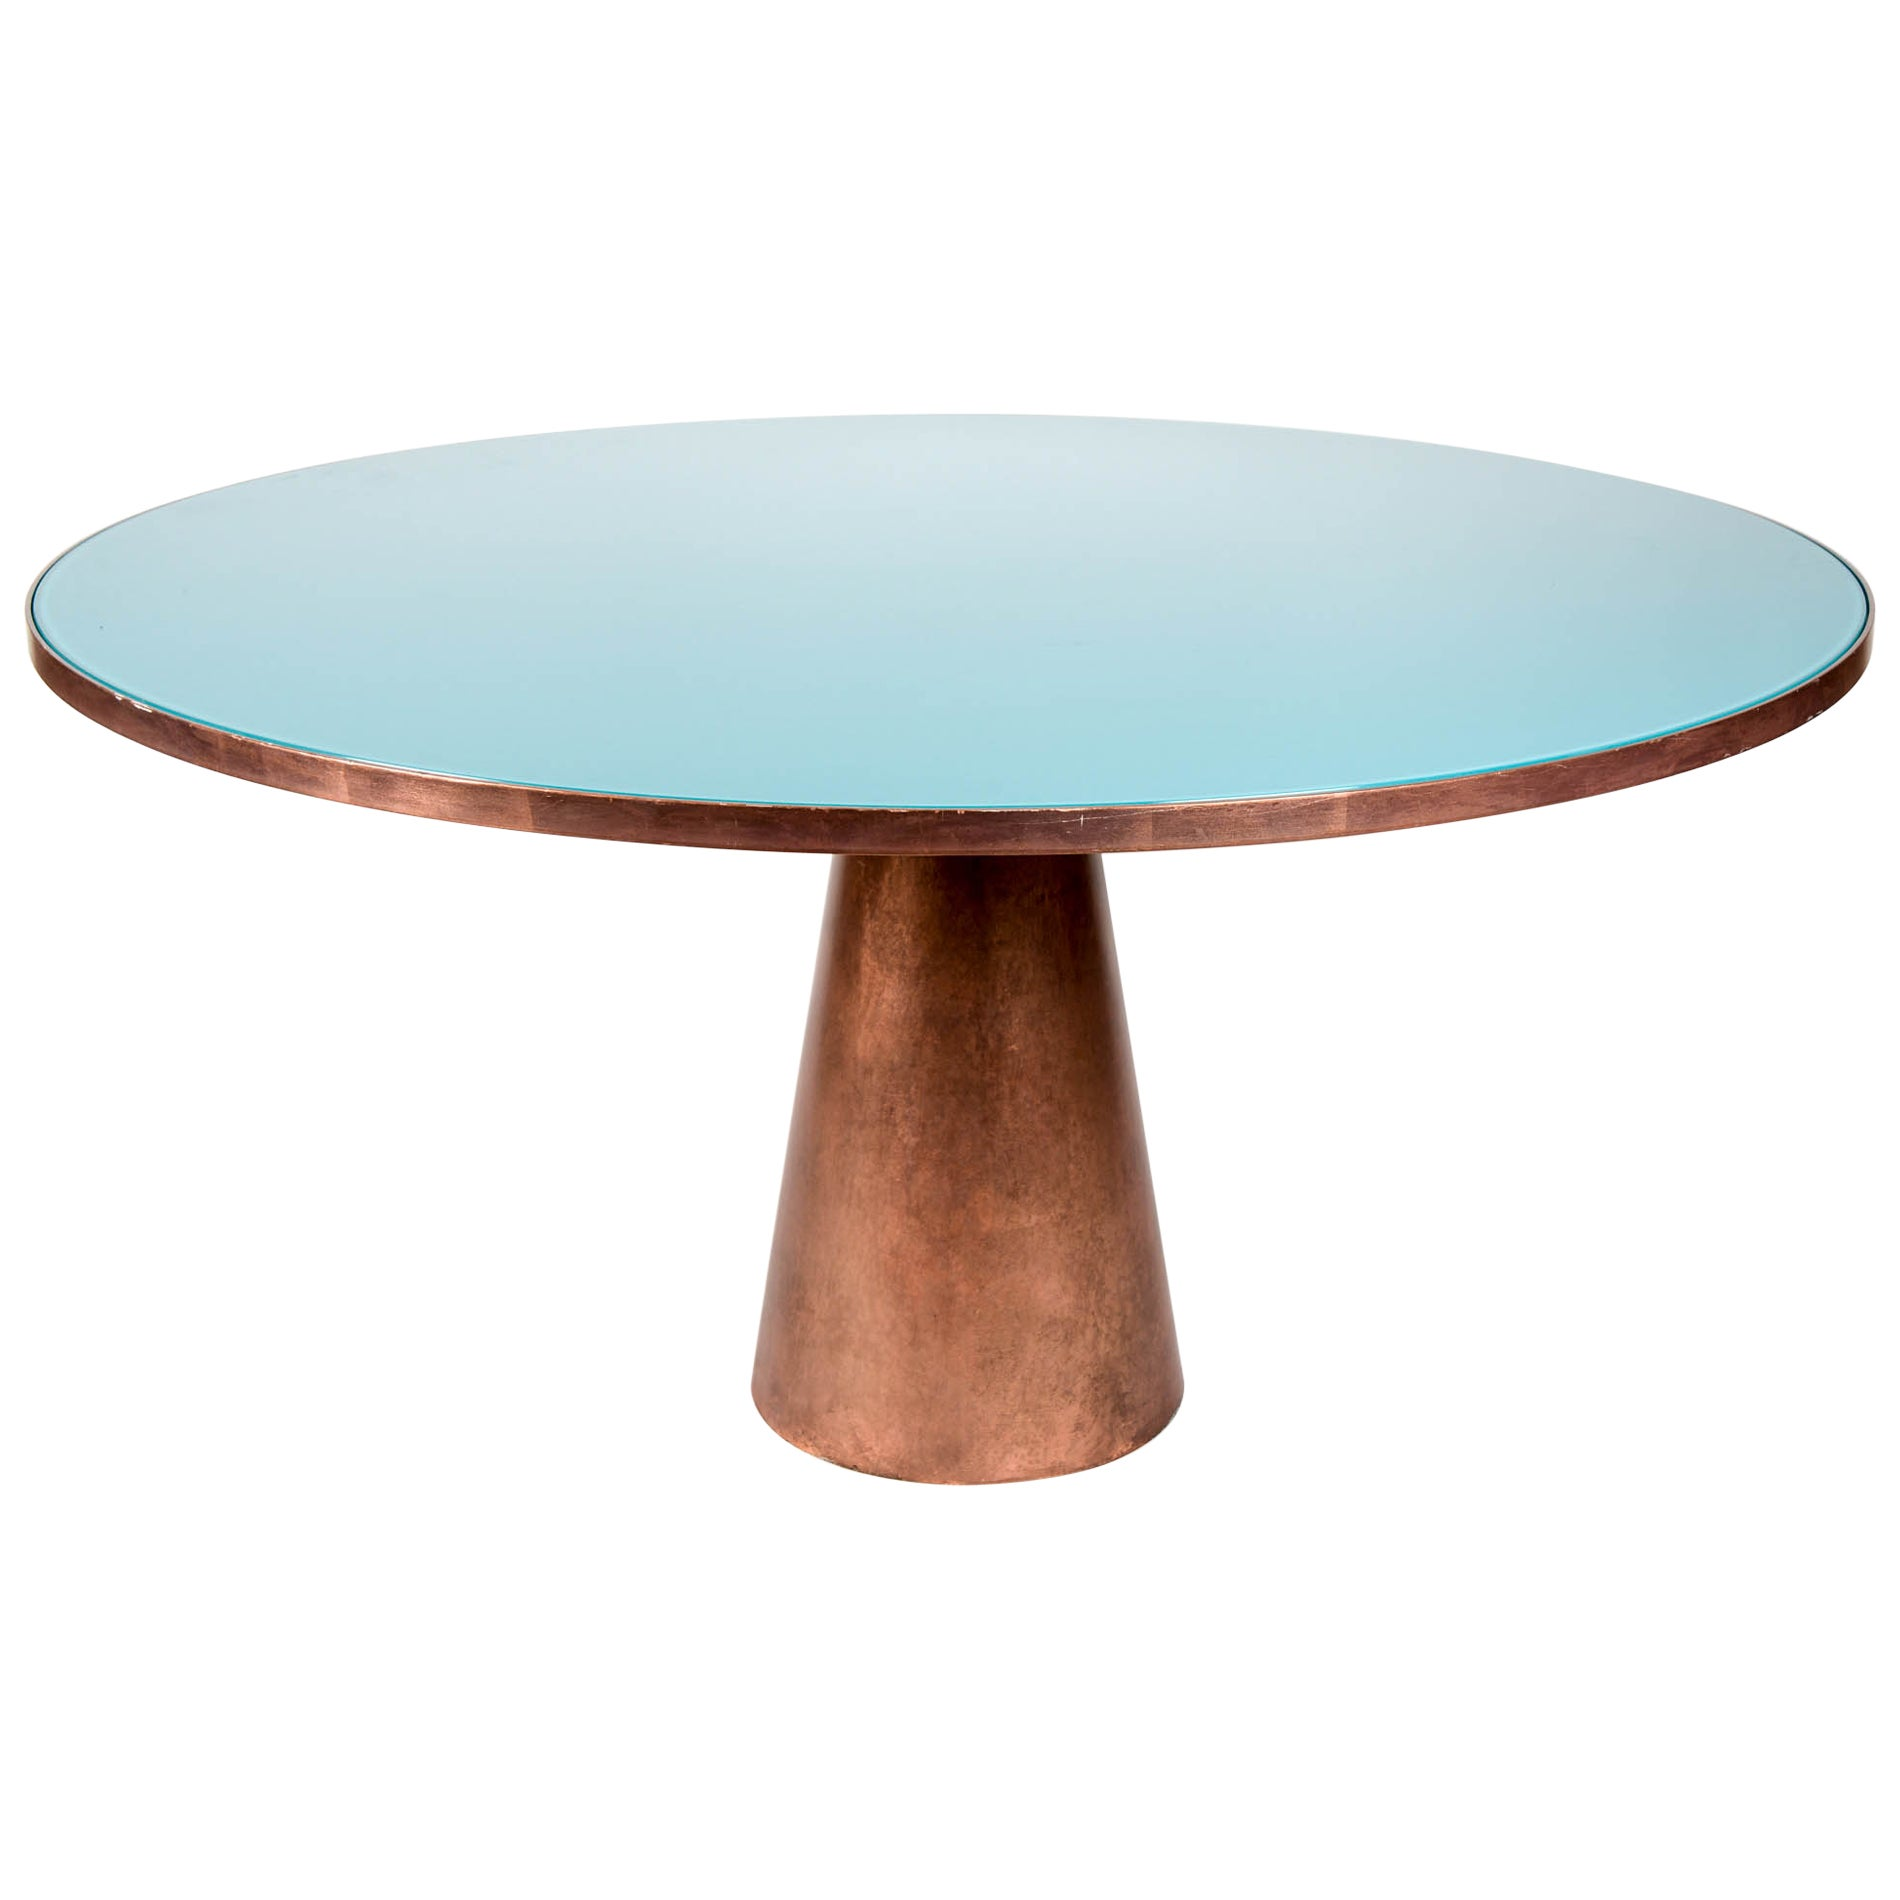 Round table at cost price.